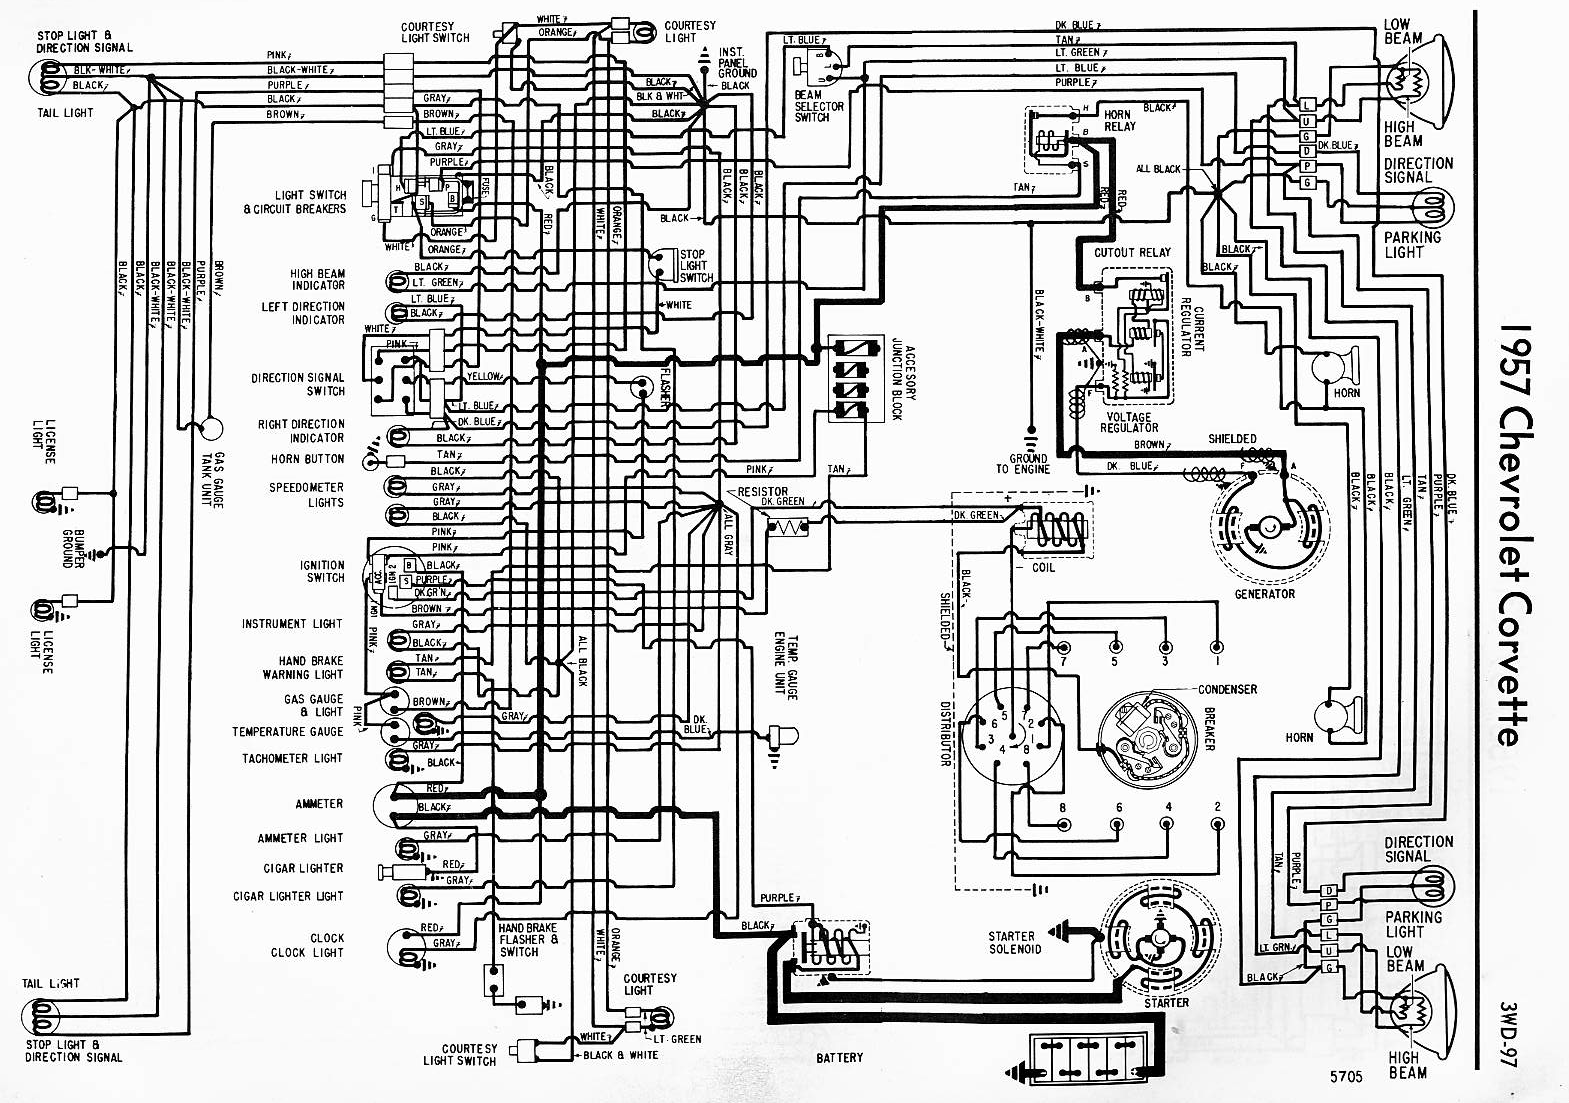 57 corvettte tracer schematic best one 1957 corvette wiring diagram willcox corvette, inc 1980 corvette wiring diagram at mifinder.co